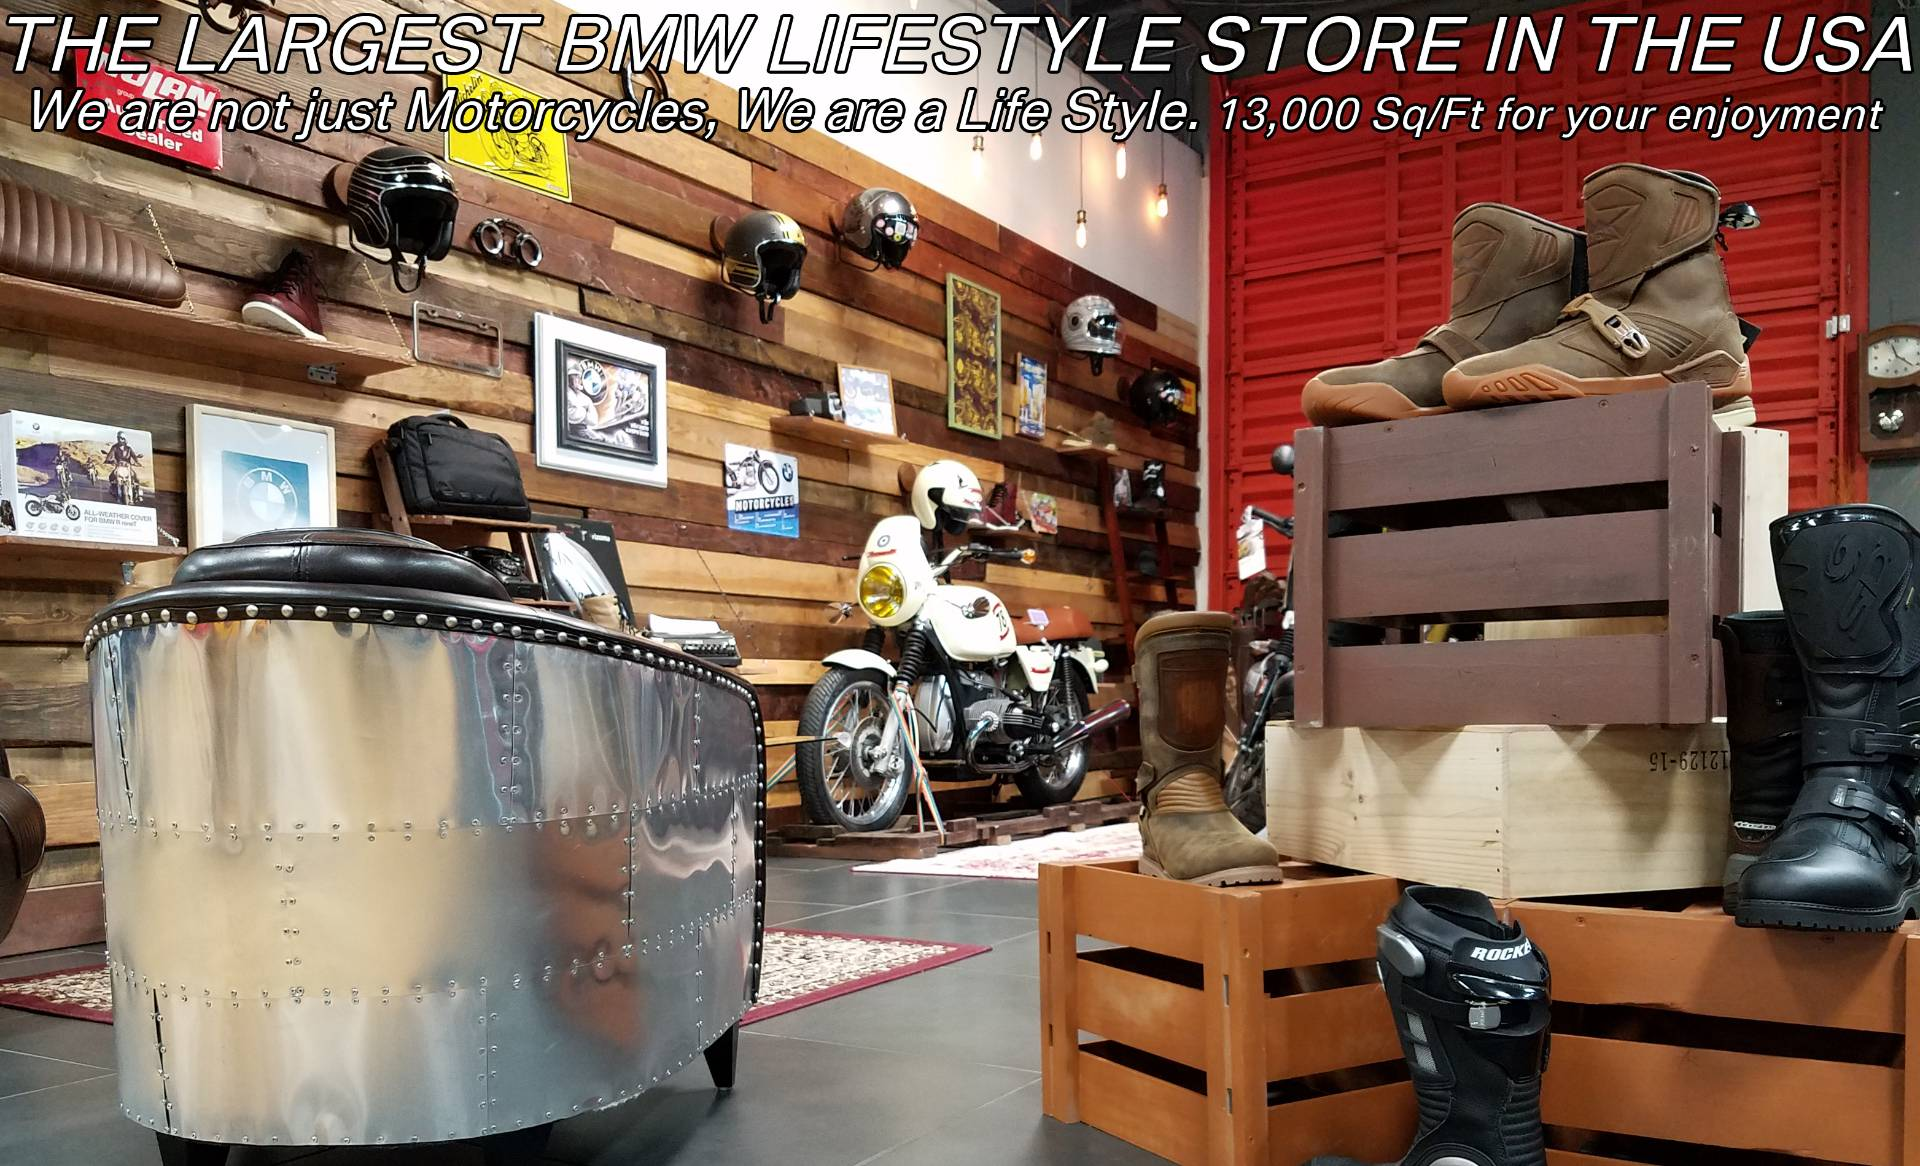 Used 2016 BMW S 1000 XR For Sale, Pre Owned BMW S 1000XR For Sale, Pre-Owned BMW Motorcycle S1000XR, BMW Motorcycle, S 1000 XR, DUAL, BMW - Photo 36